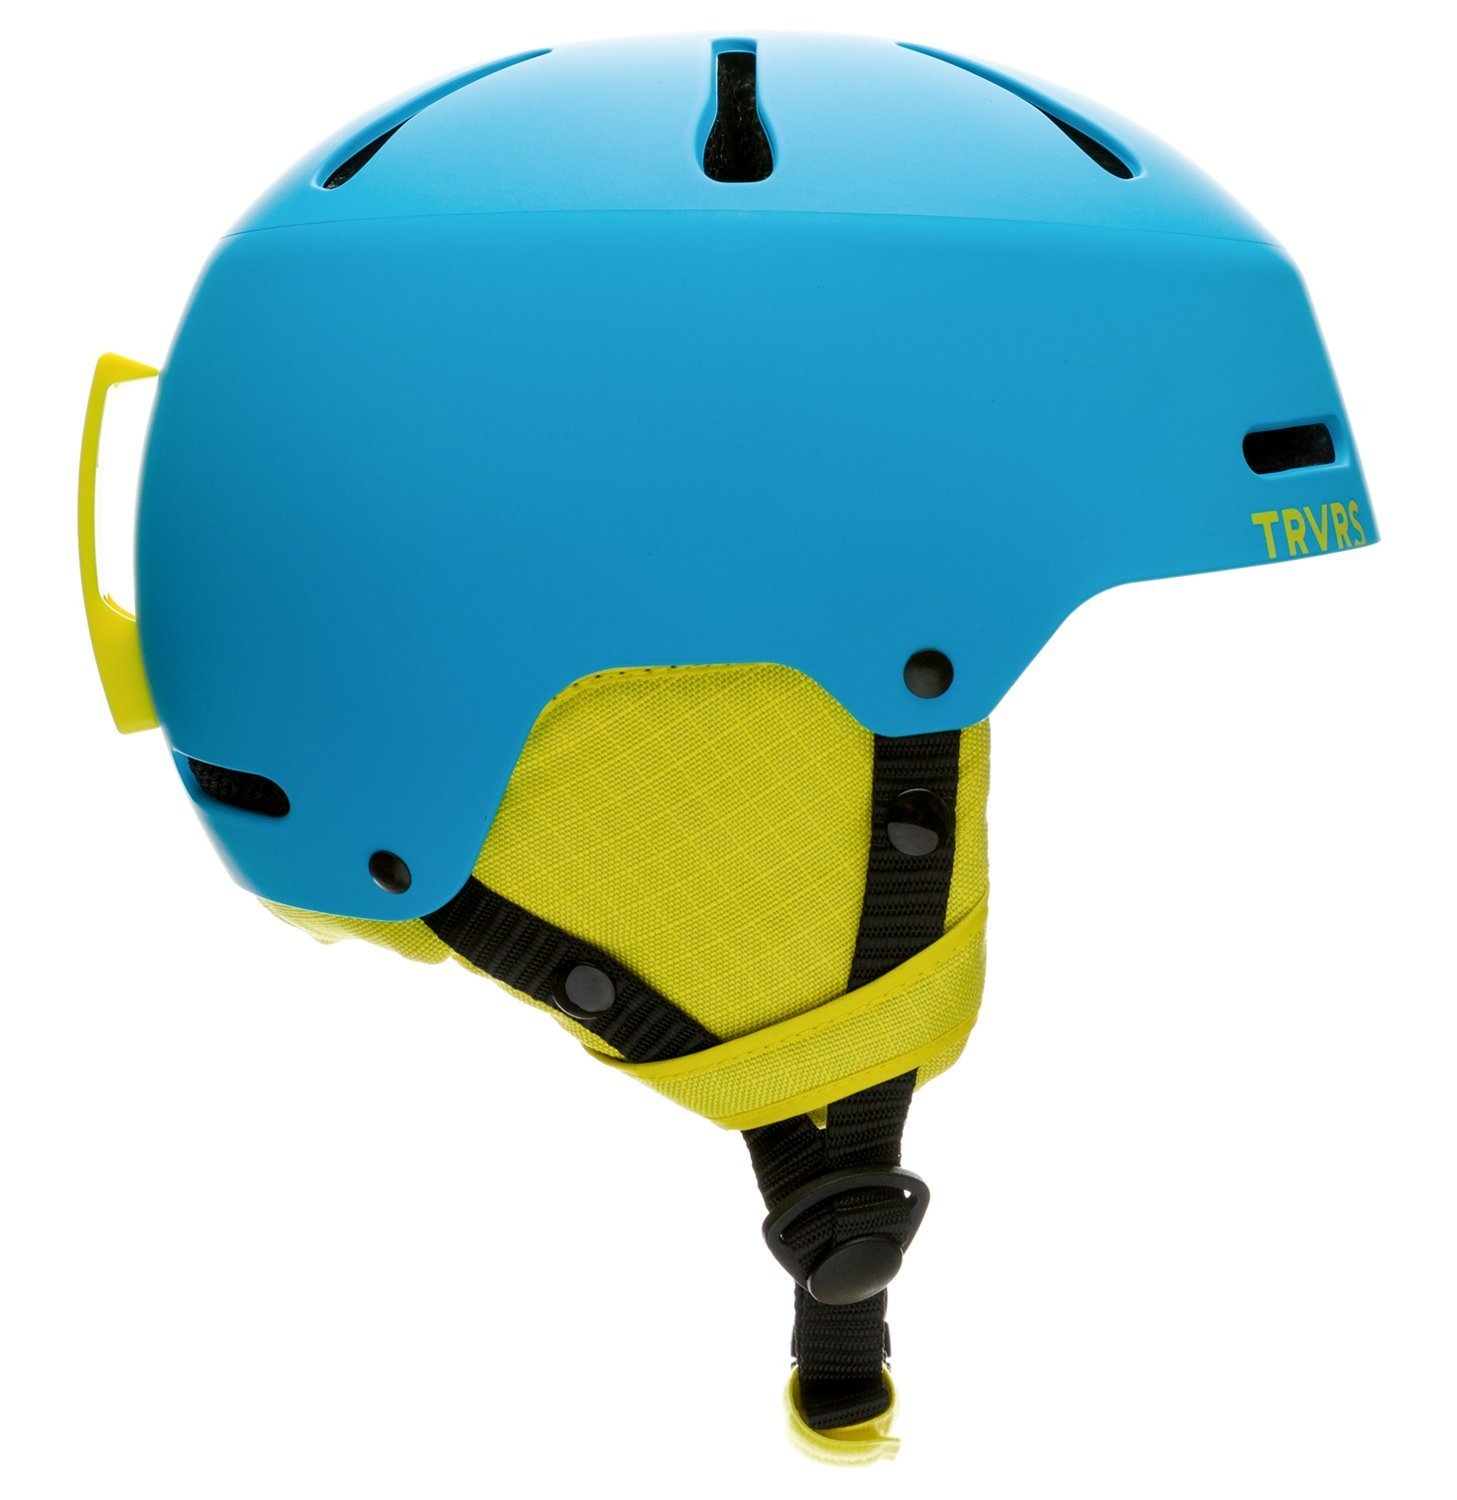 Retrospec Traverse H3 Youth Ski, Snowboard, & Snowmobile Helmet